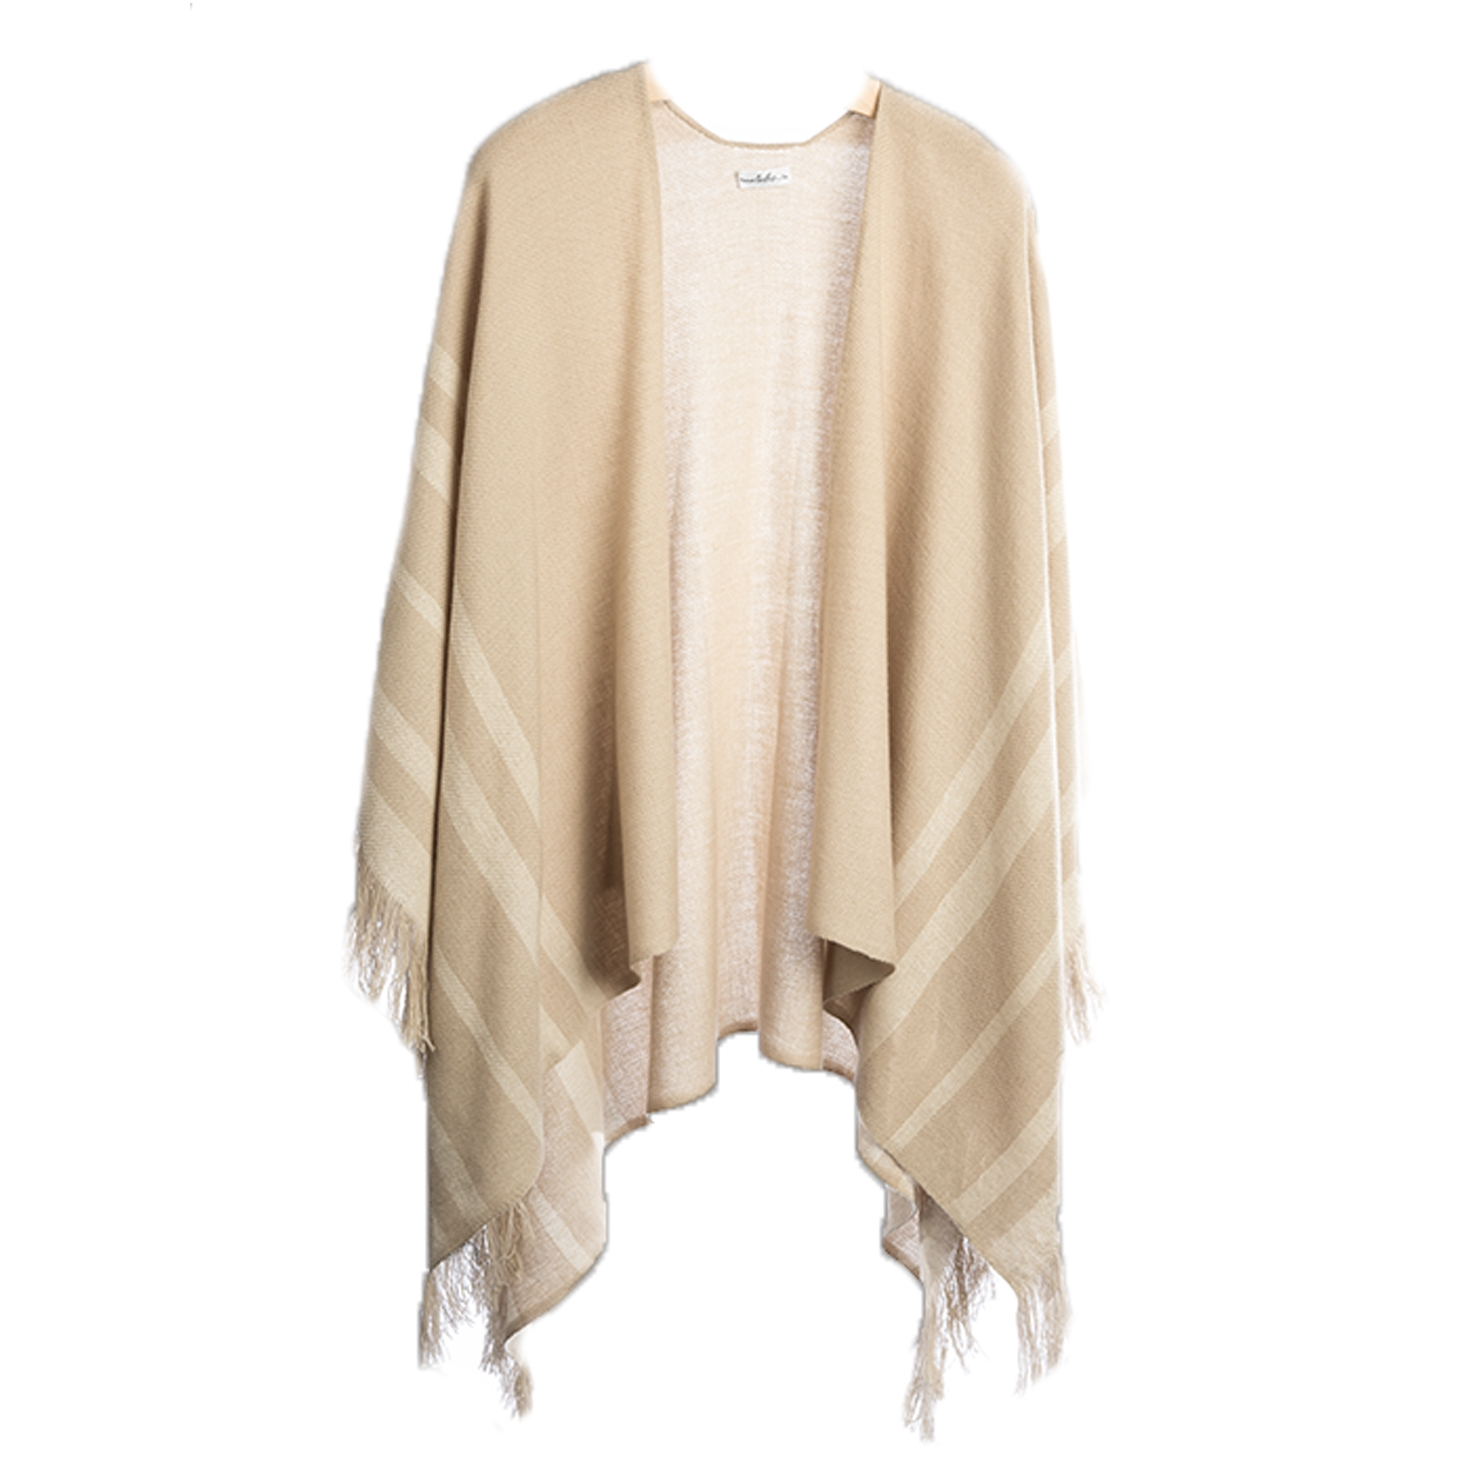 Cashmere Blend Wrap ,  Thread Tales Co.  £300